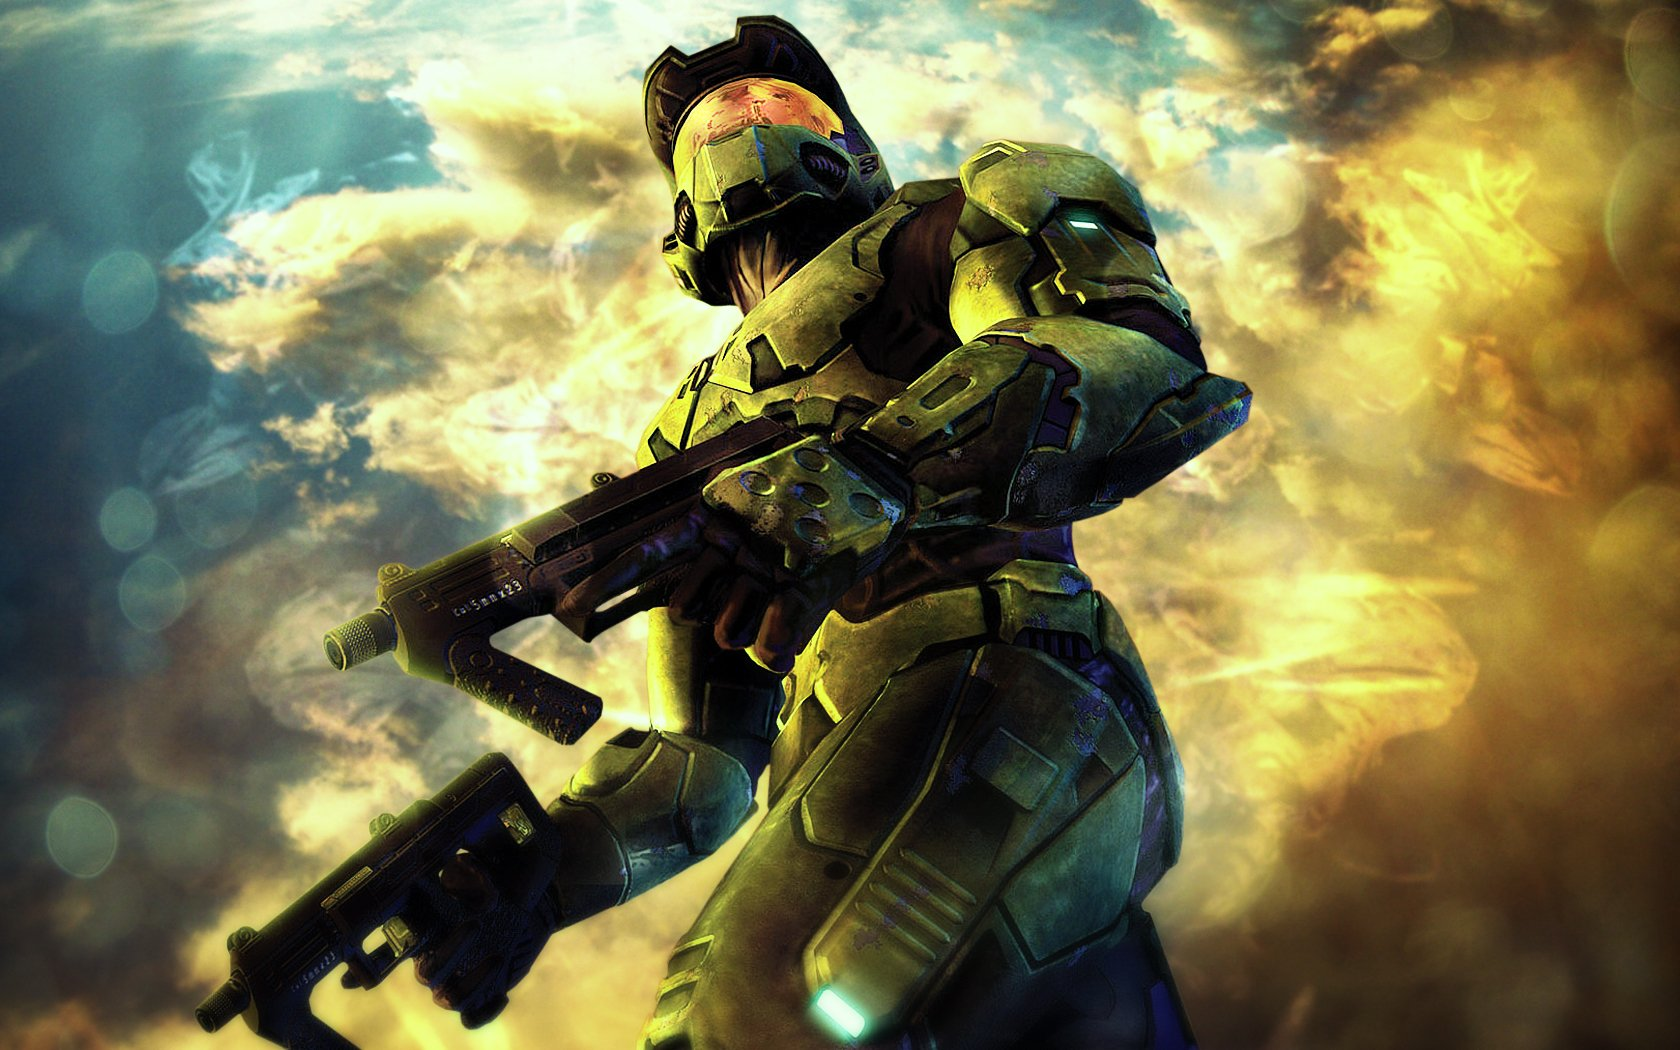 Halo Combat Evolved Wallpapers Hd Backgrounds 86 images in 1680x1050